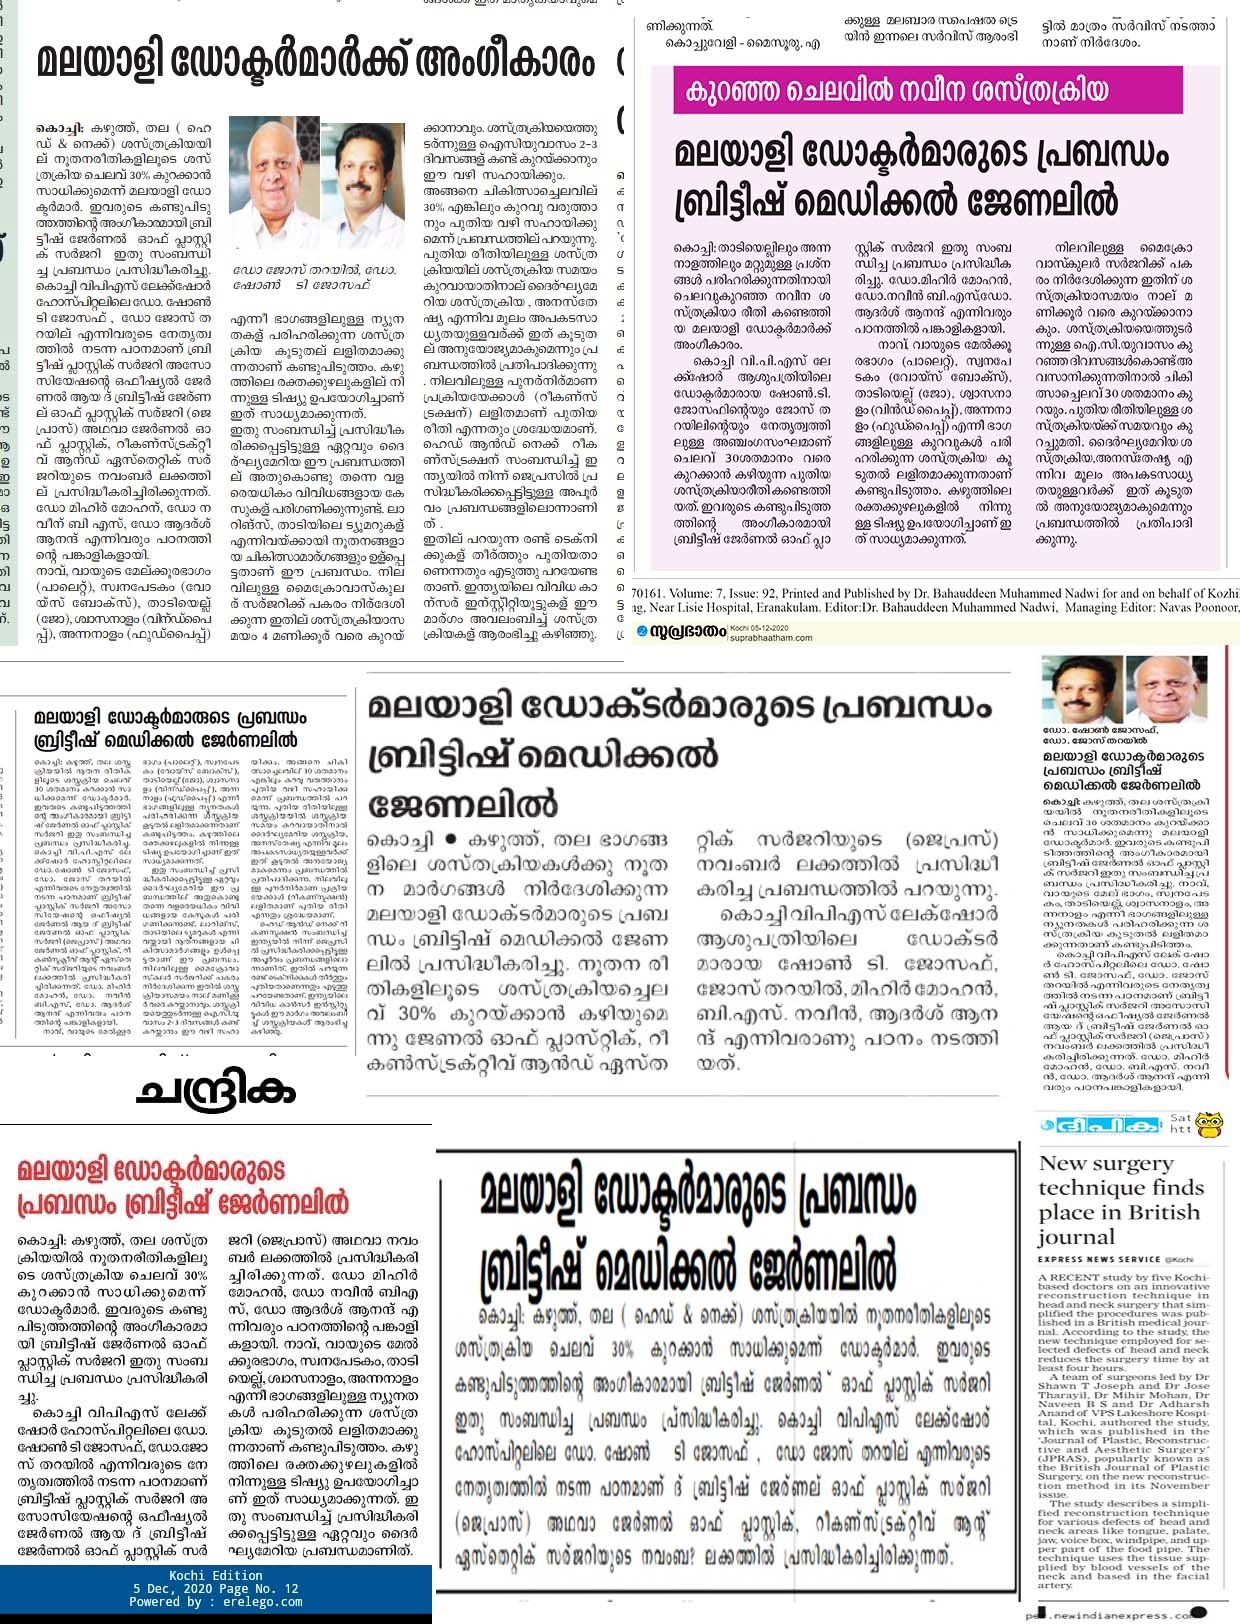 Kerala Doctors' New Reconstruction Technique find place in British Medical Journal